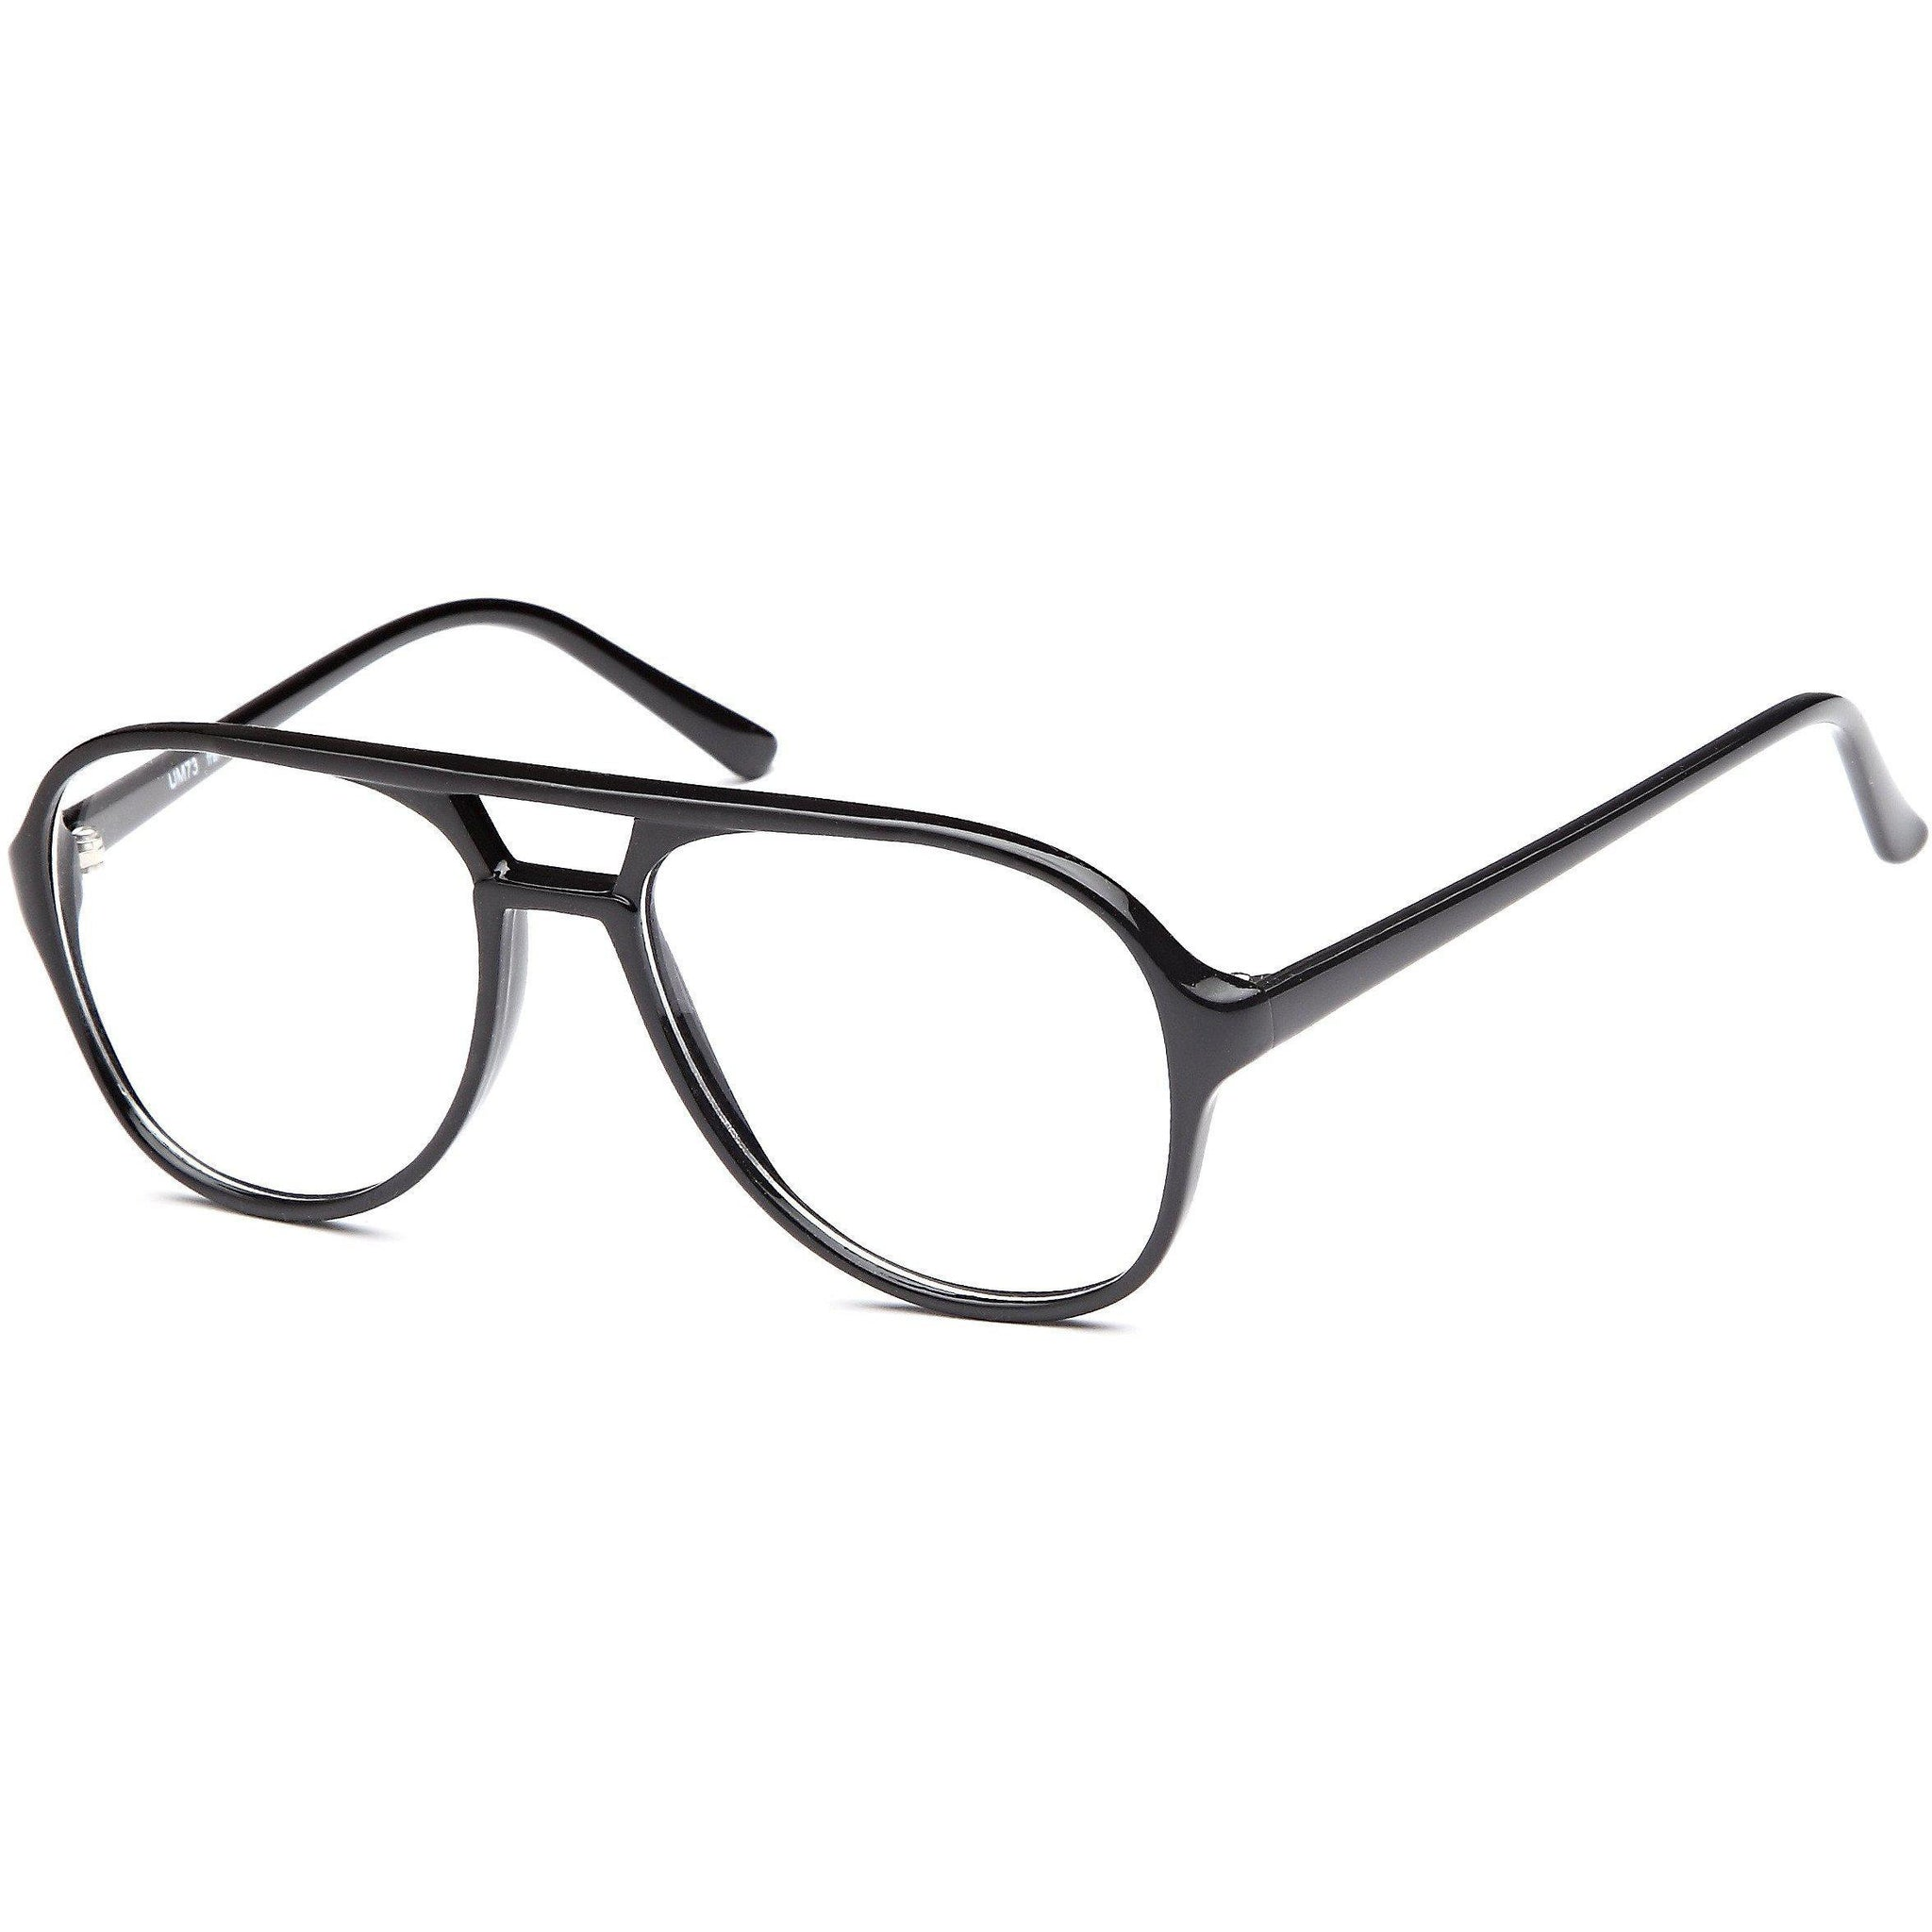 Chiswick by The Square Mile Prescription Eyeglasses Frame - timetoshade